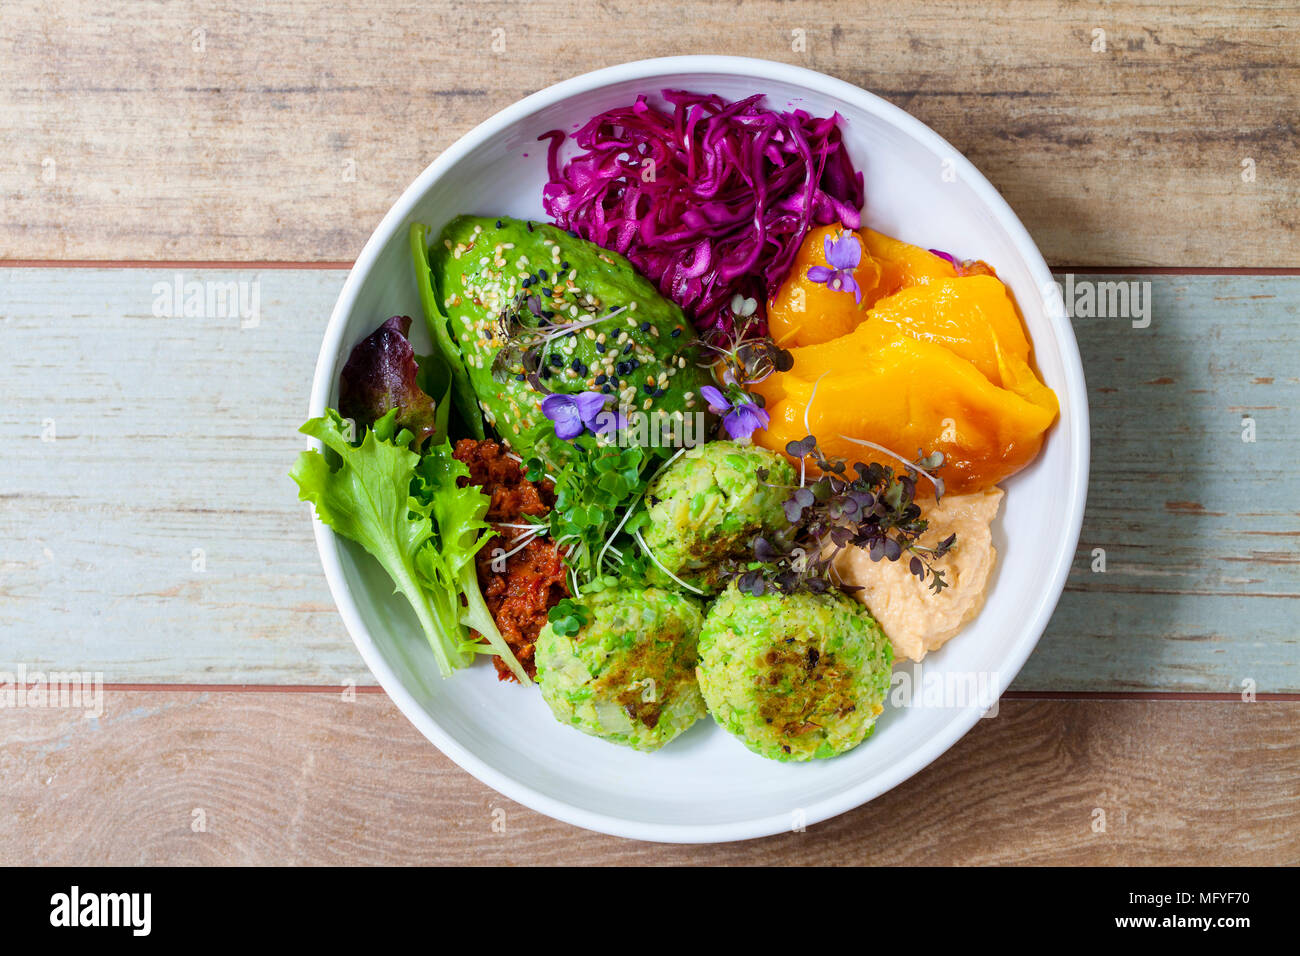 Vegan Buddha bowl with beans and green peas patties, avocado, roast yellow pepper, red cabbage, sundried tomato paste and hummus - Stock Image